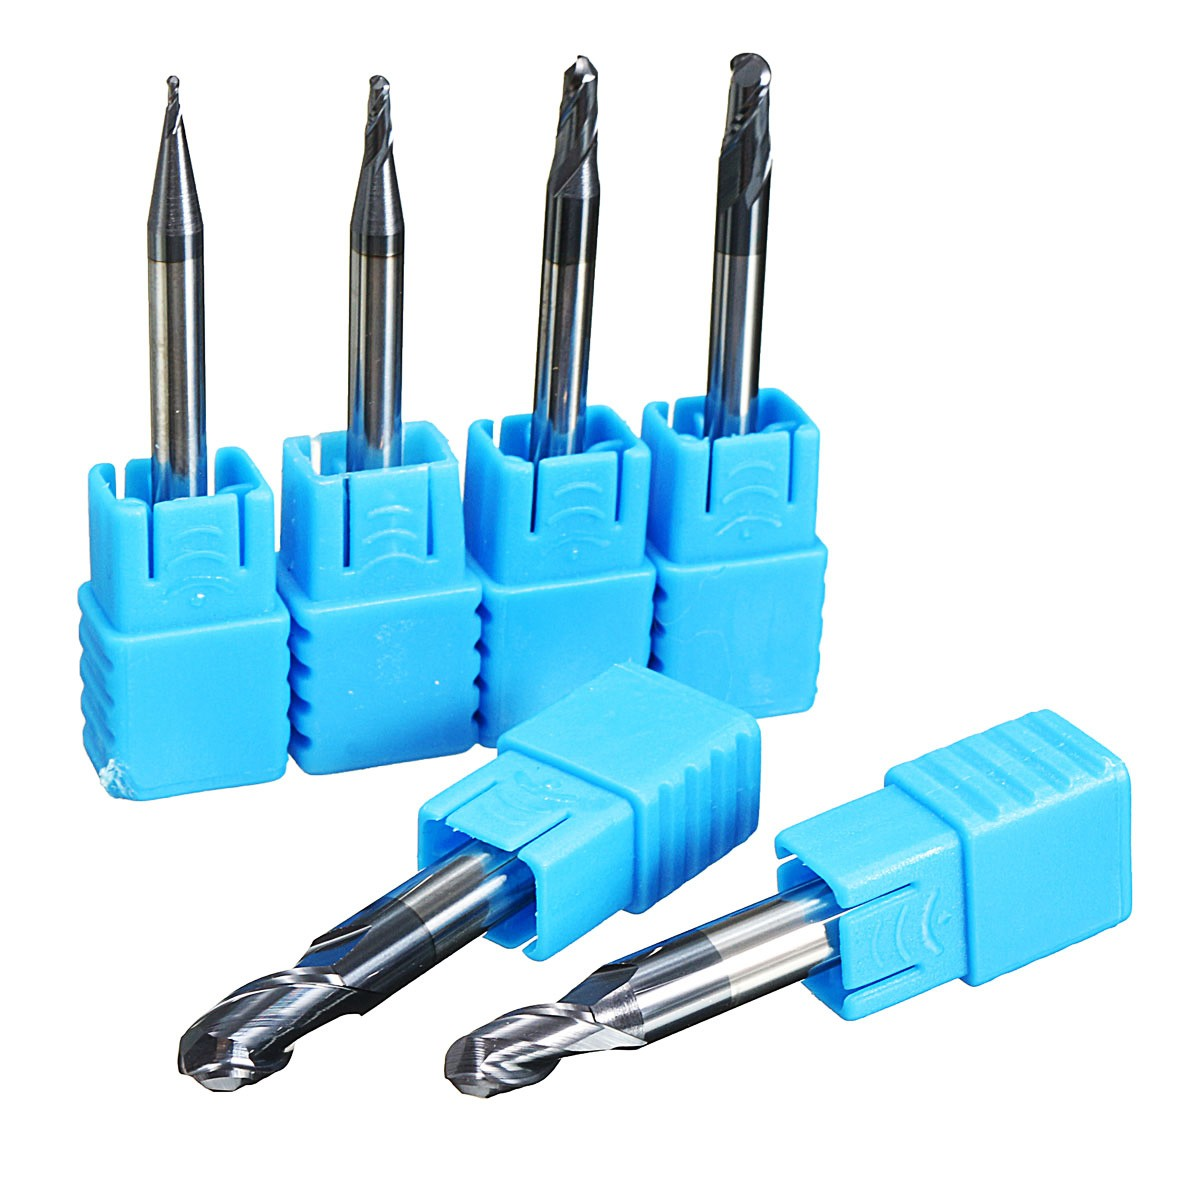 цены 6Pcs/set R0.5/1/1.5/2/2.5/3.0MM Nitrogen Coated 2 Flutes Ball Nose End Mill Set CNC Drill Router Bit Tool For The Mill